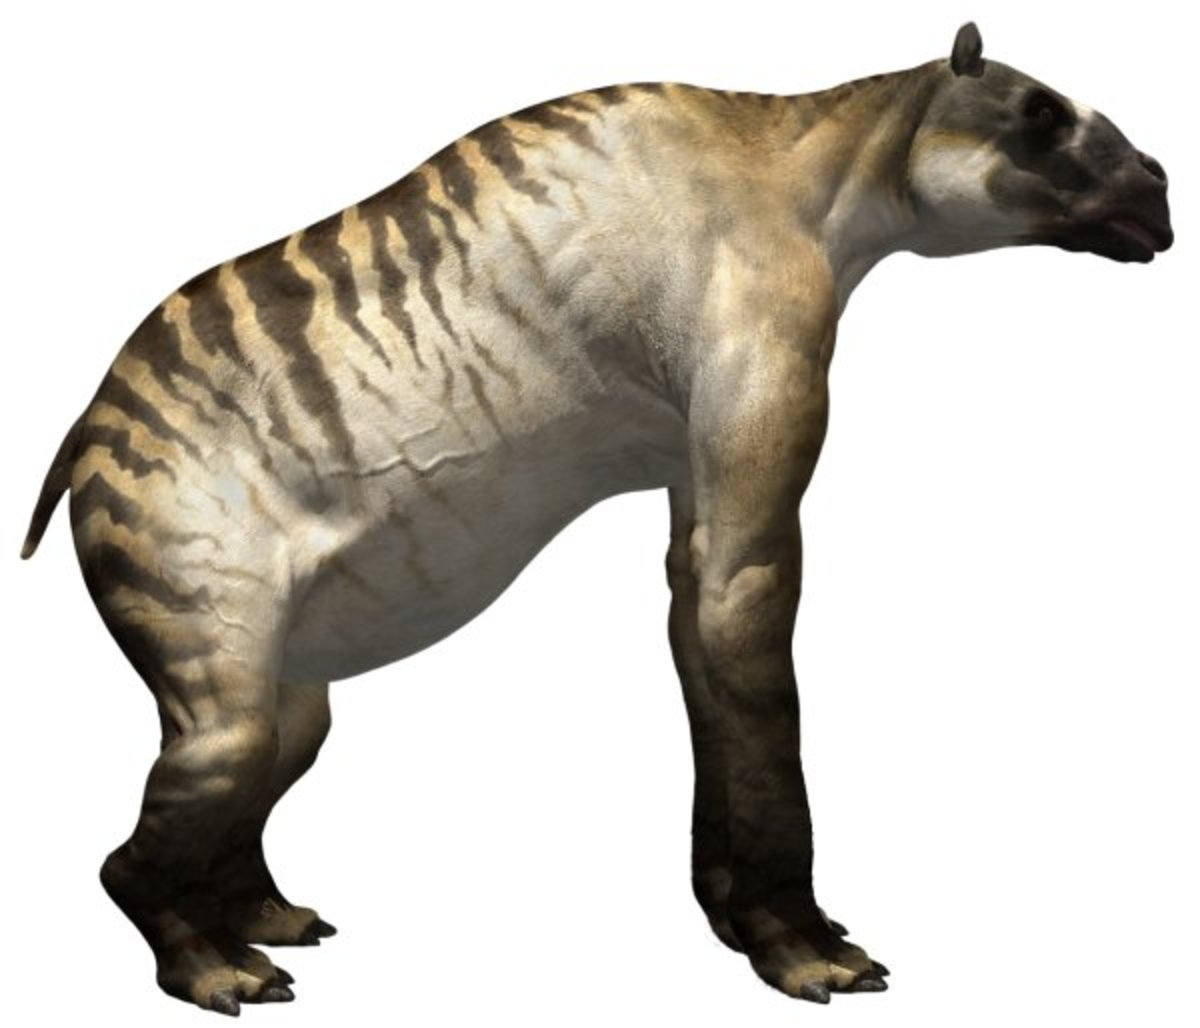 Ancylotherium belonged to an ancient group of mammals known as chalicotheres, which were once a varied and widely distributed group. But Ancylotherium is one of the last of its kind.